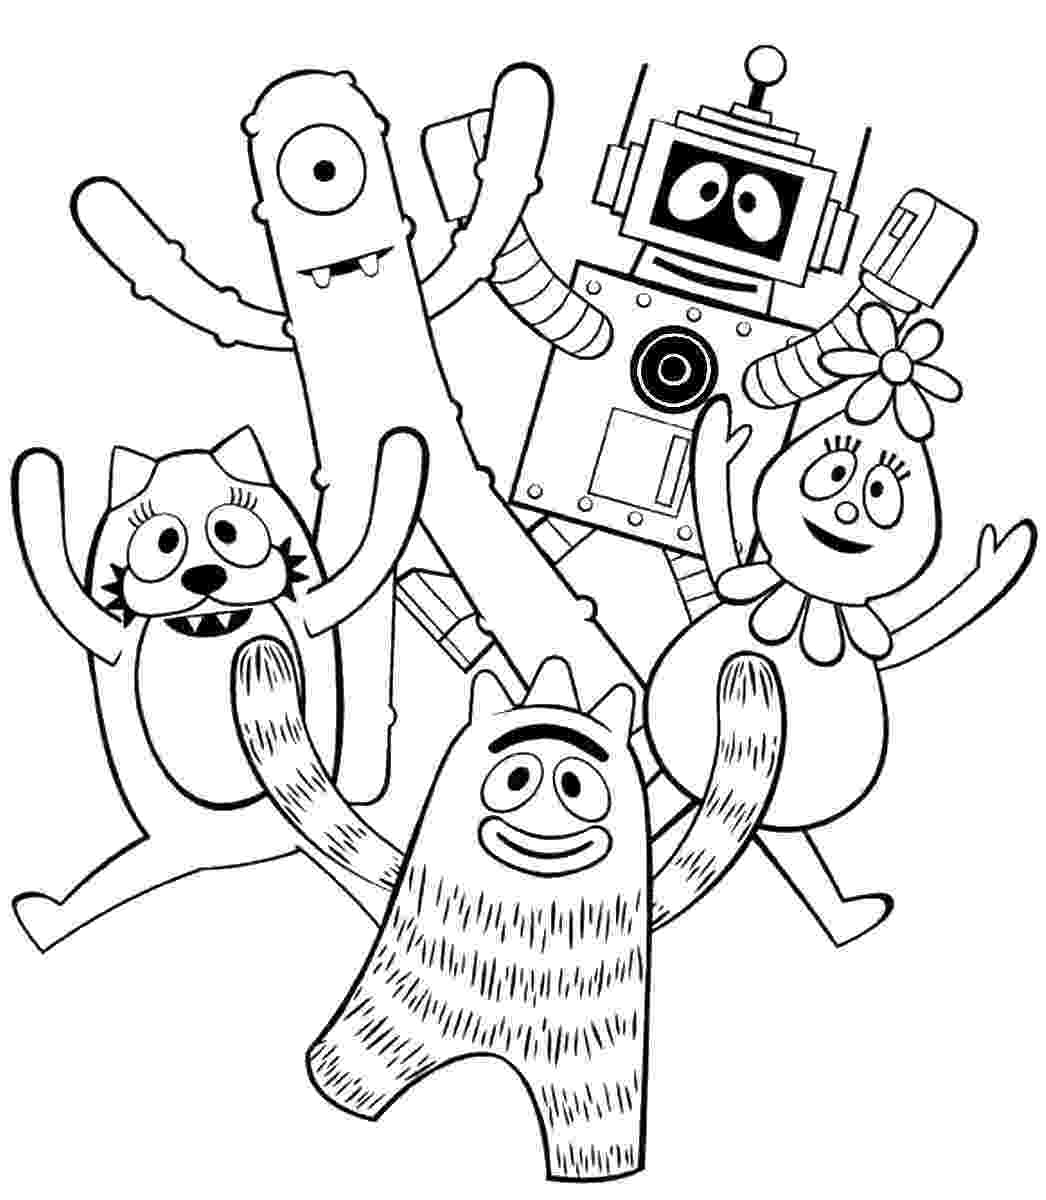 yo gabba gabba coloring pages fun coloring pages yo gabba gabba coloring pages yo gabba coloring pages gabba